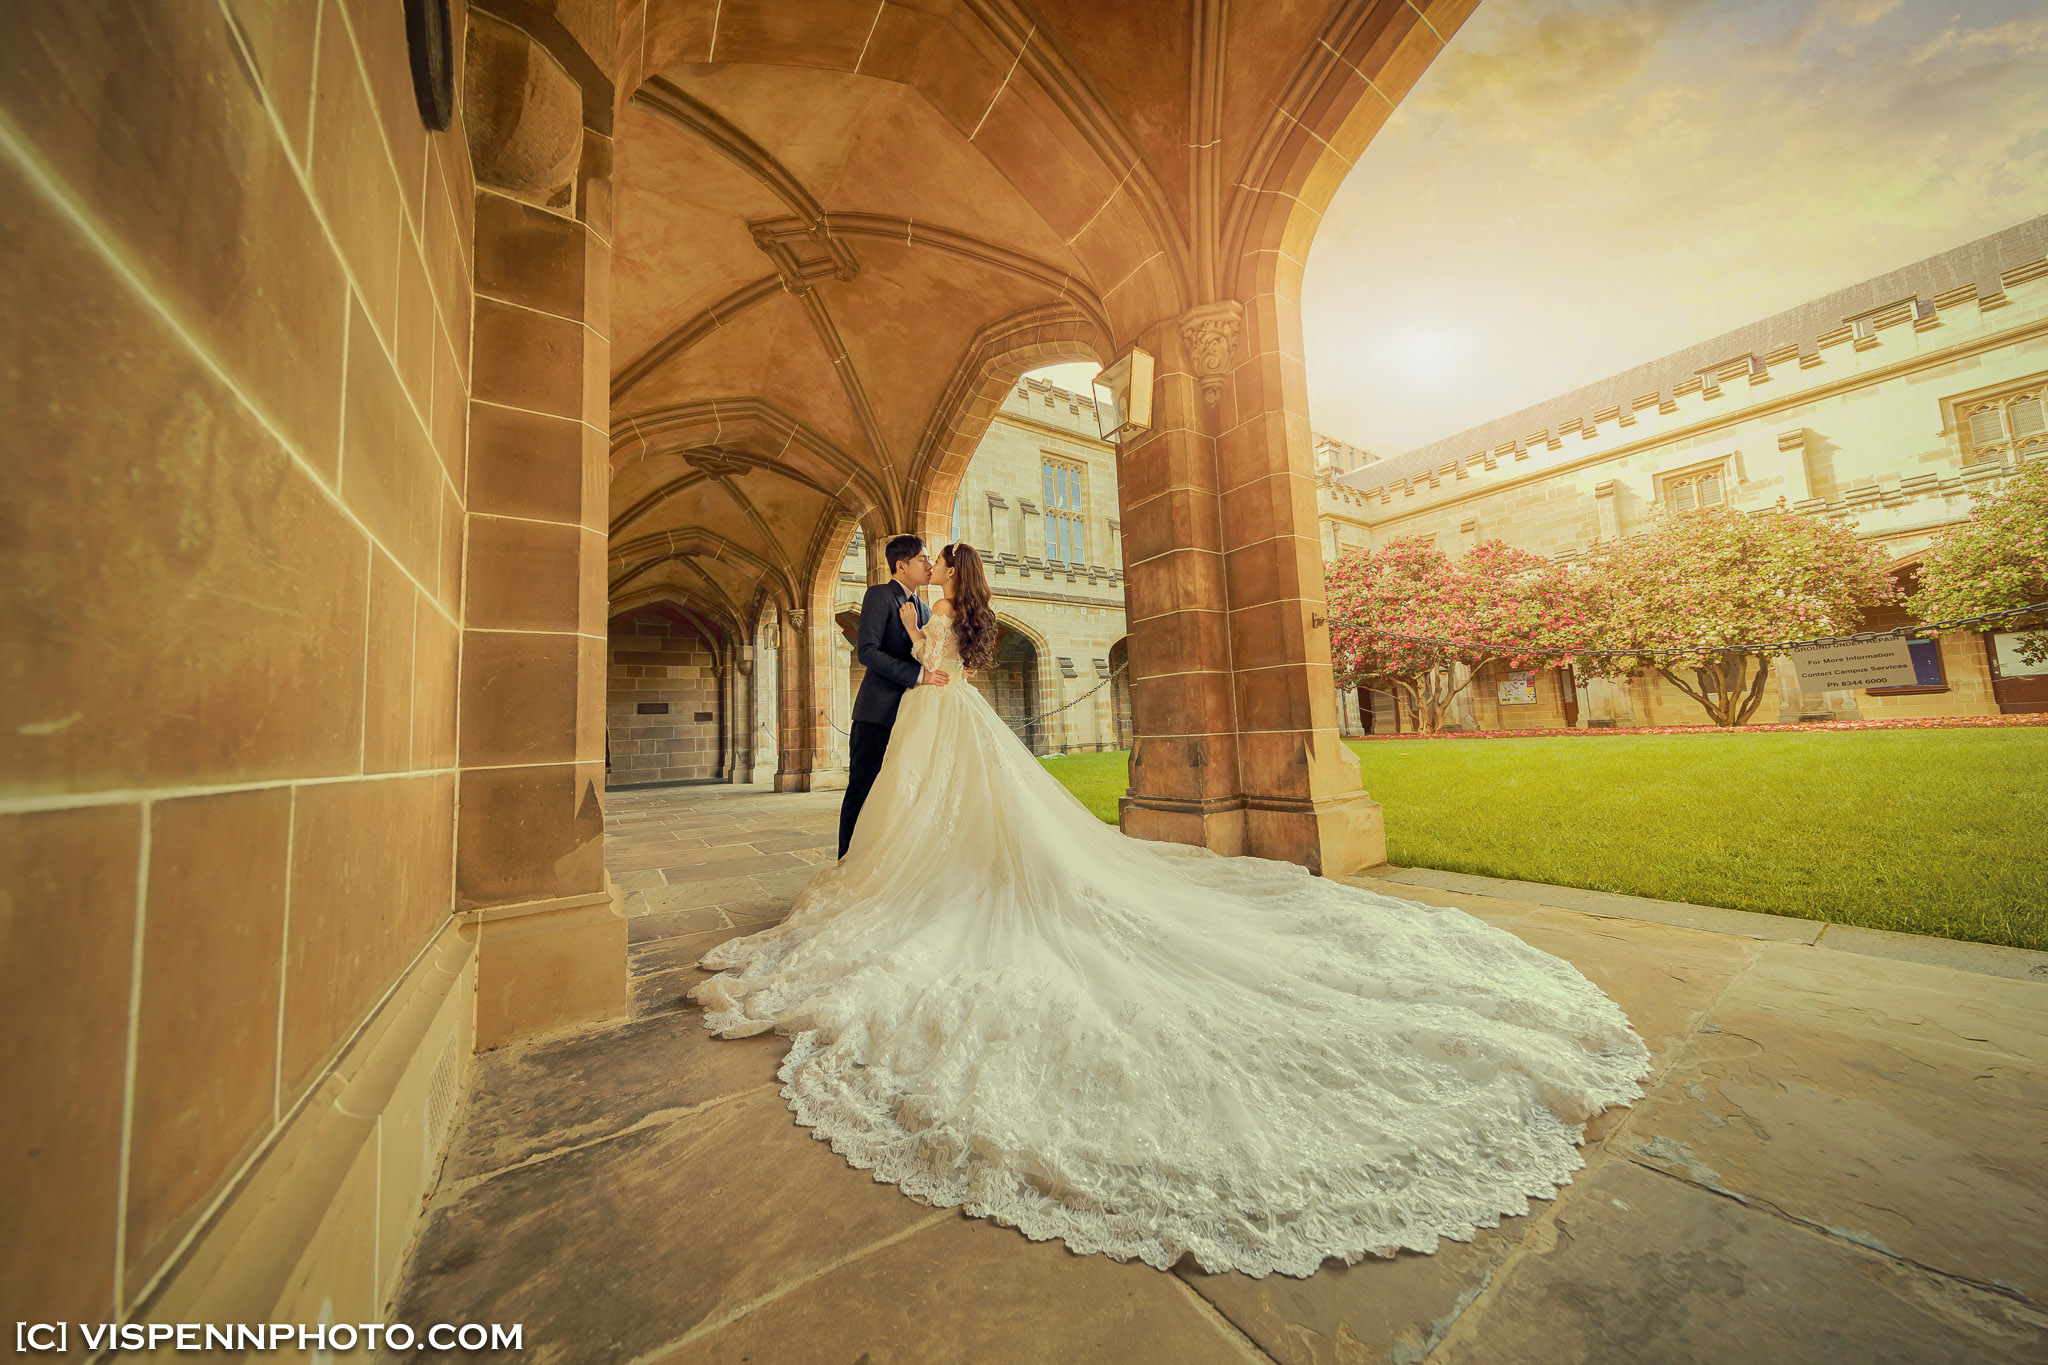 PRE WEDDING Photography Melbourne ZHPENN JackySerena 0427 1